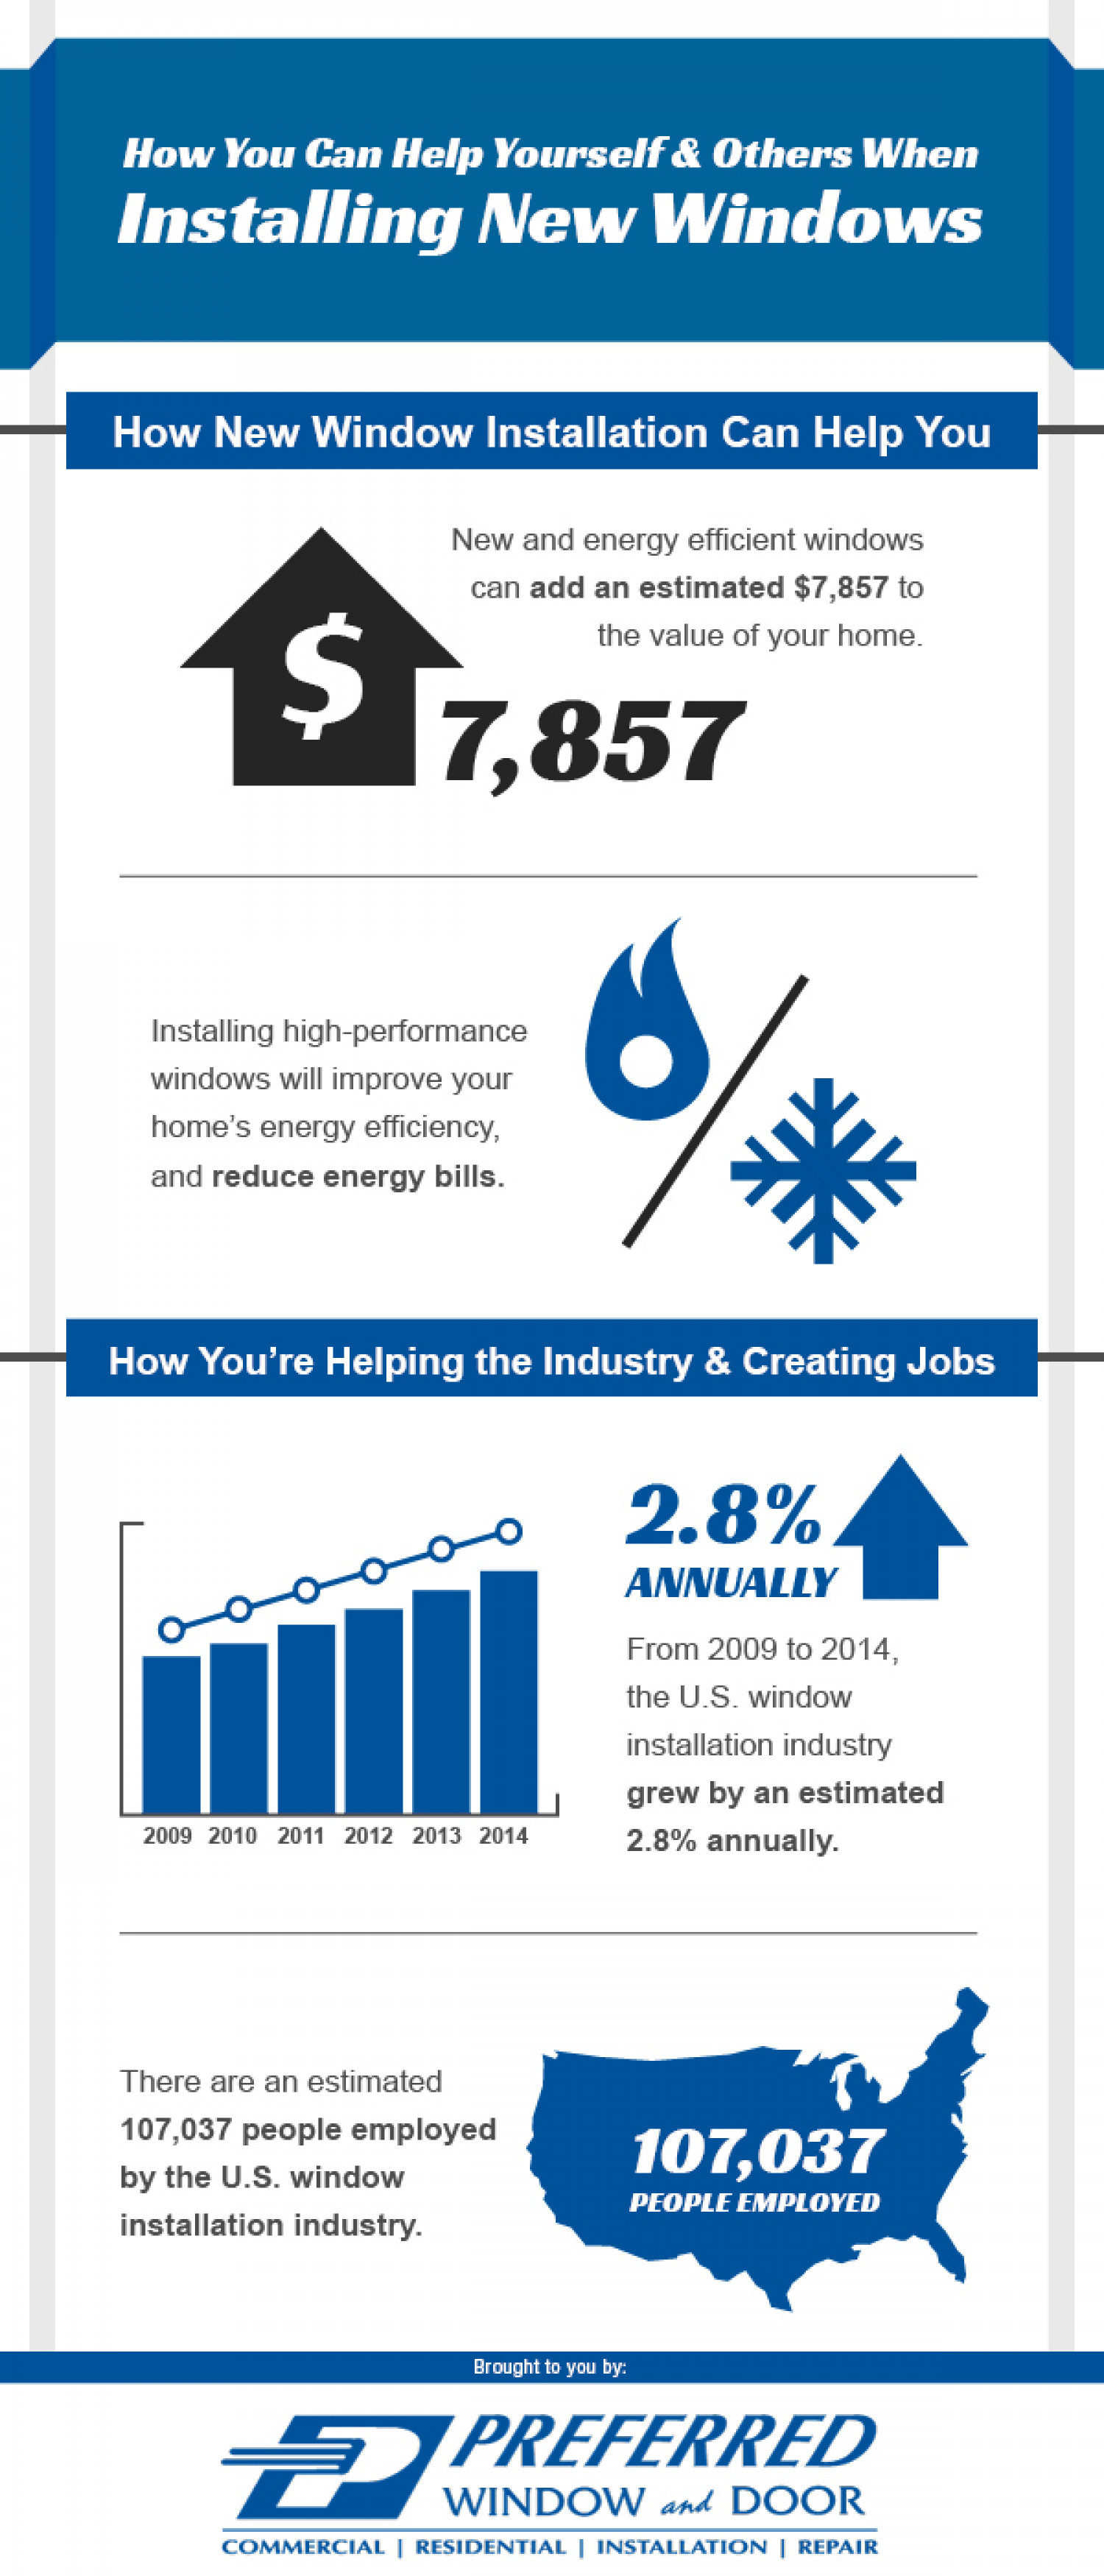 How You Can Help Yourself & Others When Installing New Windows Infographic